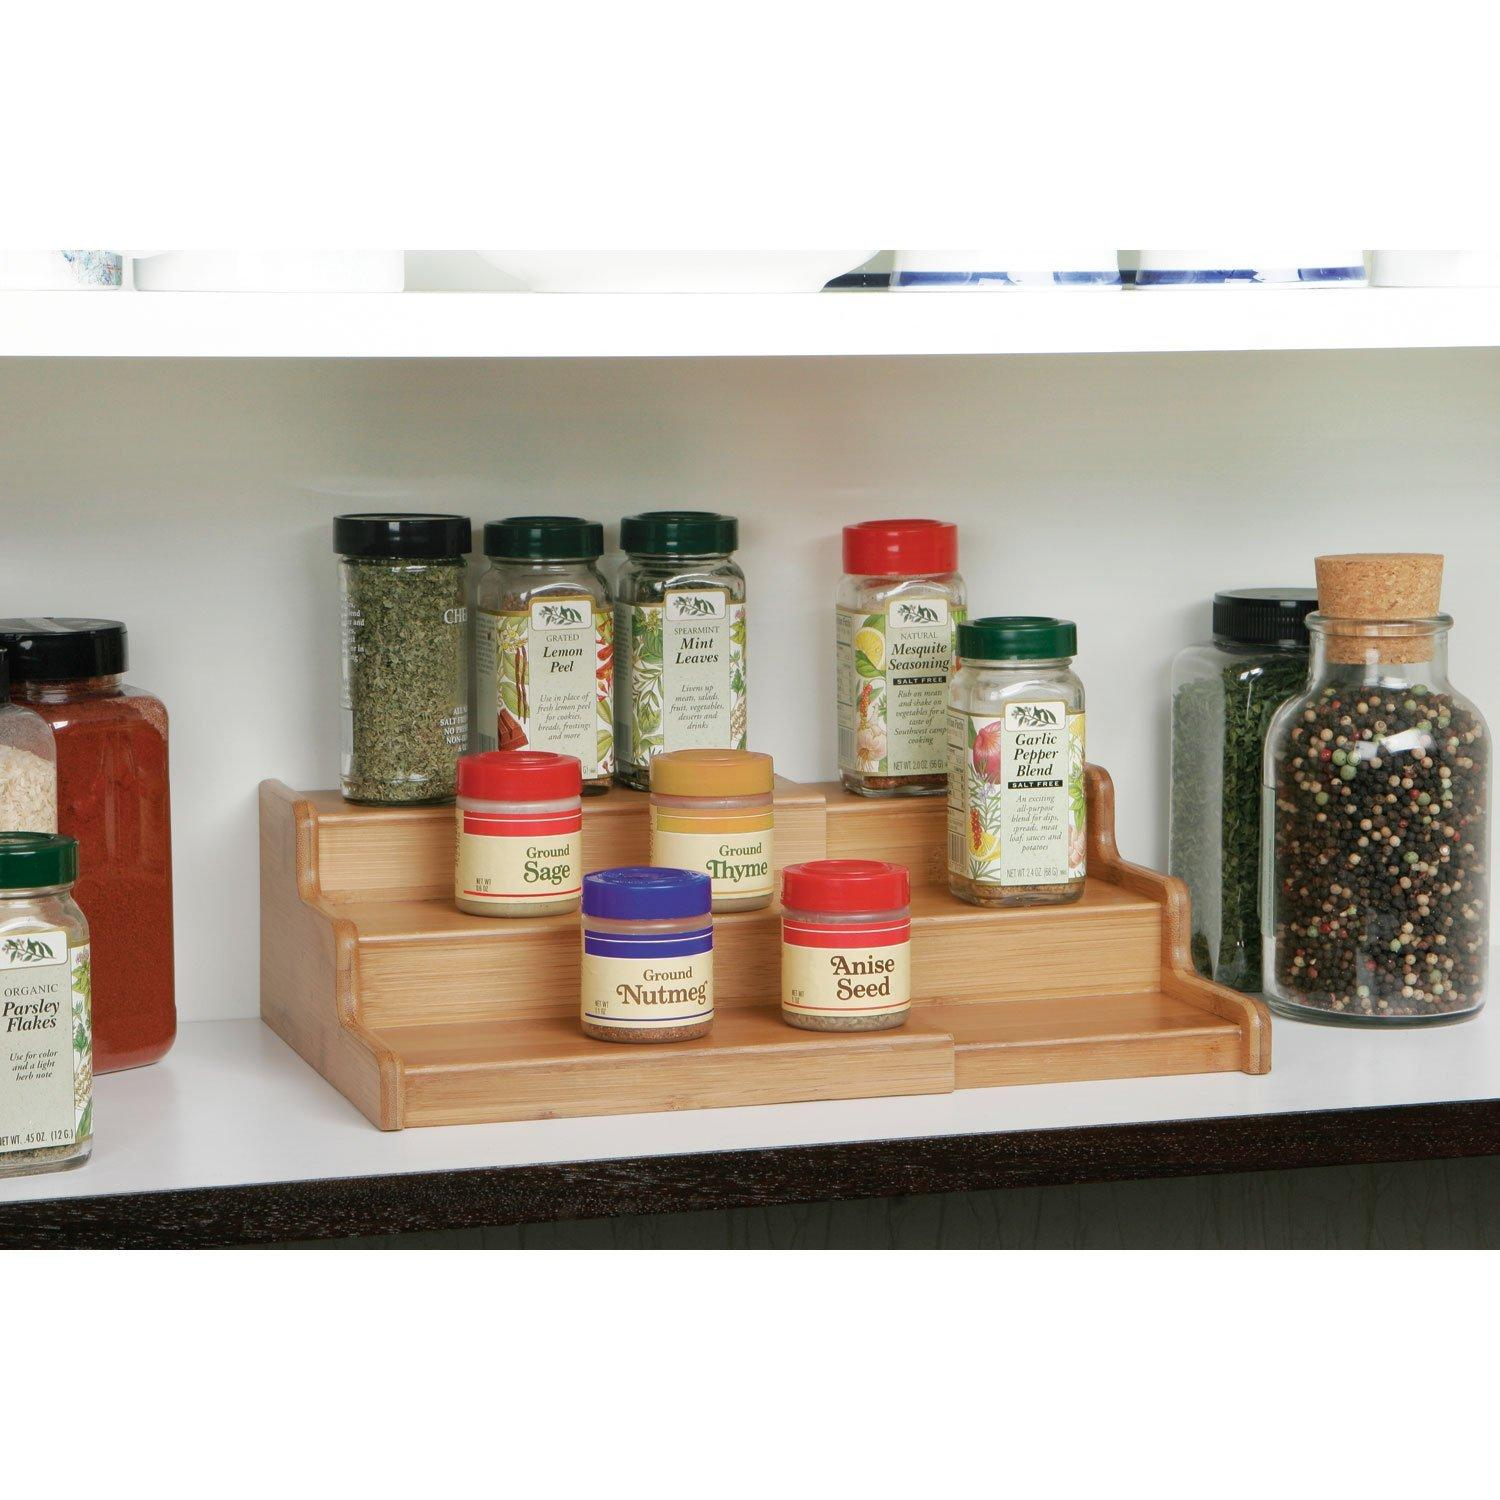 Kitchen Cabinet Spice Rack Organizer: Amazon.com: Seville Classics 3-Tier Expandable Bamboo